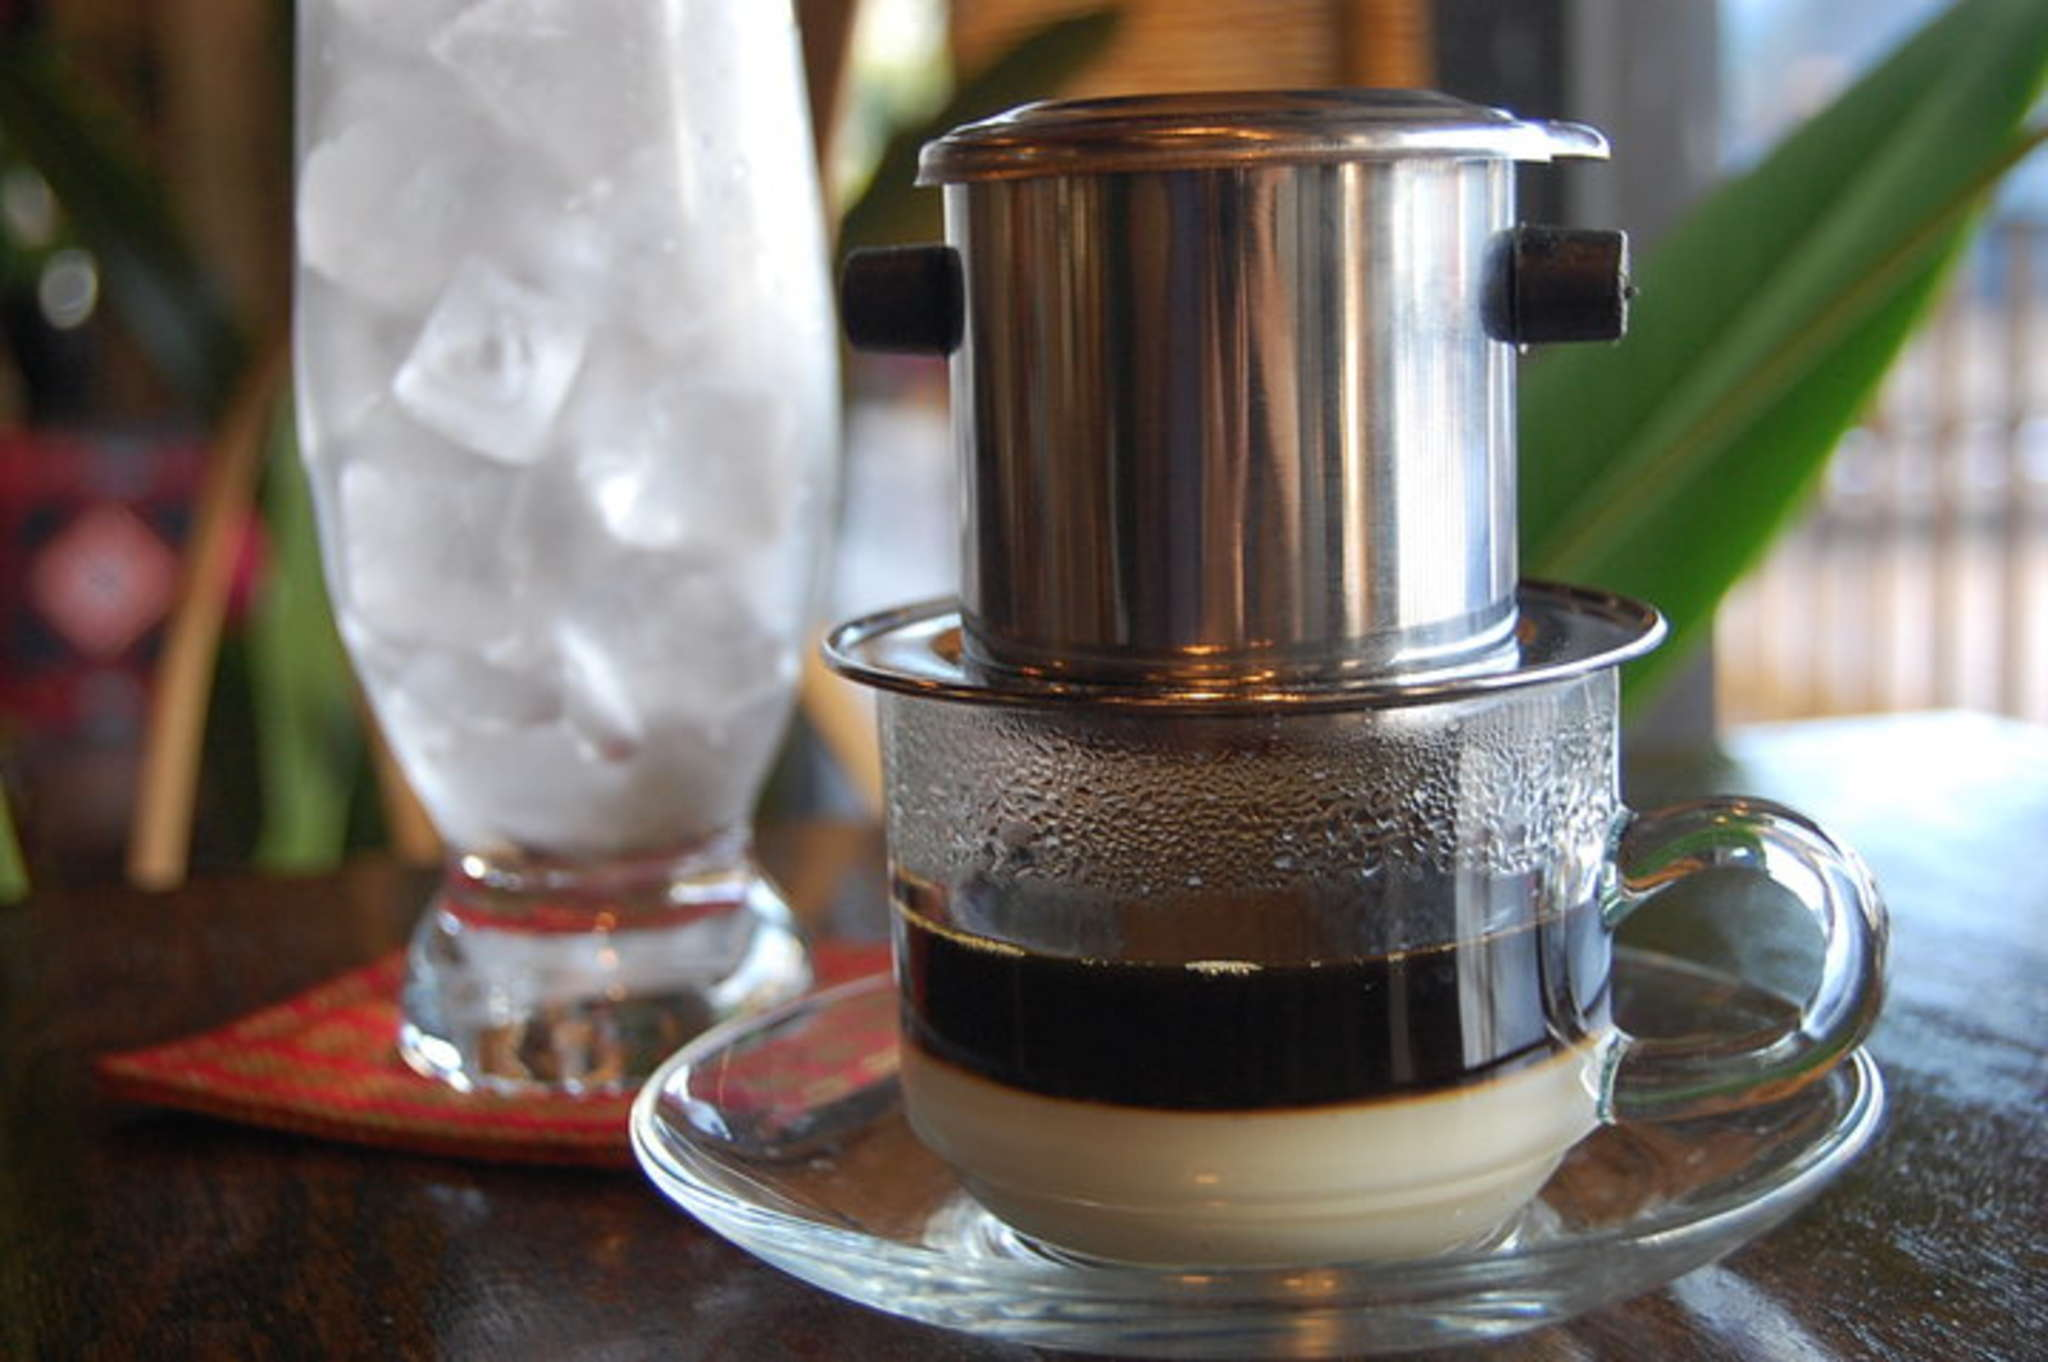 Phin filter coffee